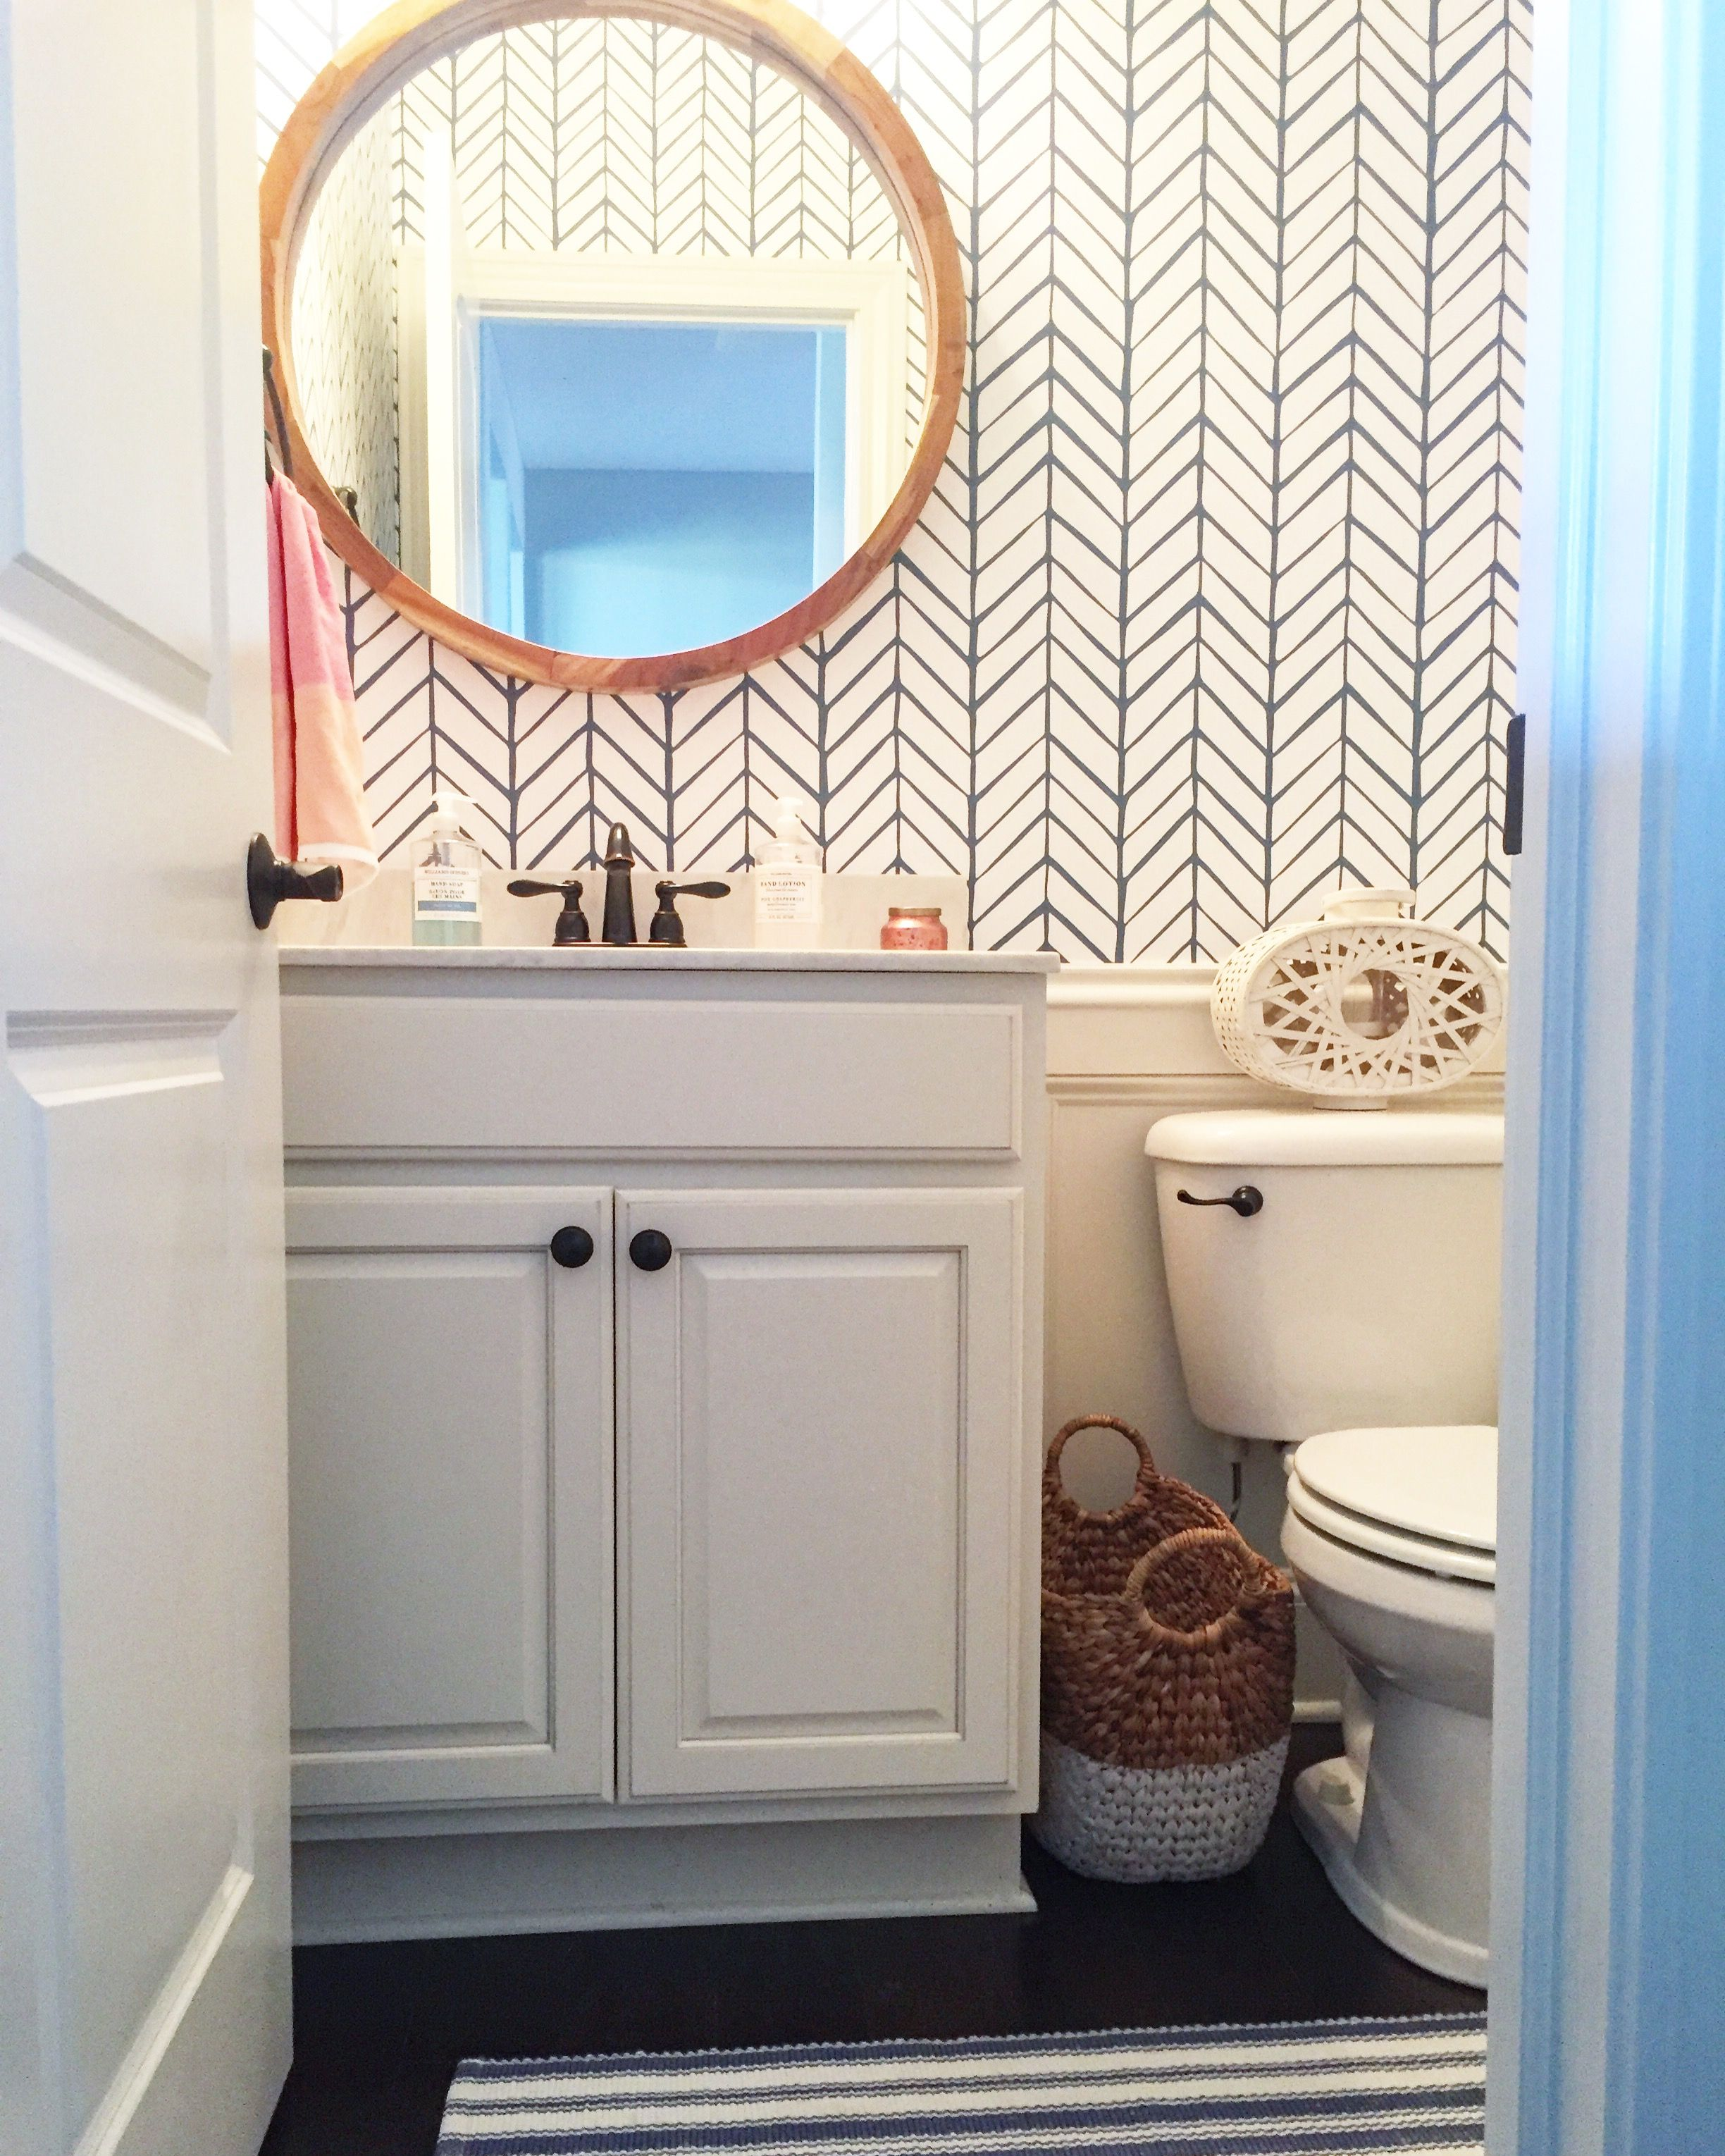 Kitchen Remodel Half Bath Sunroom Addition And Laundry: Serena And Lily Wallpaper, Coastal Bath